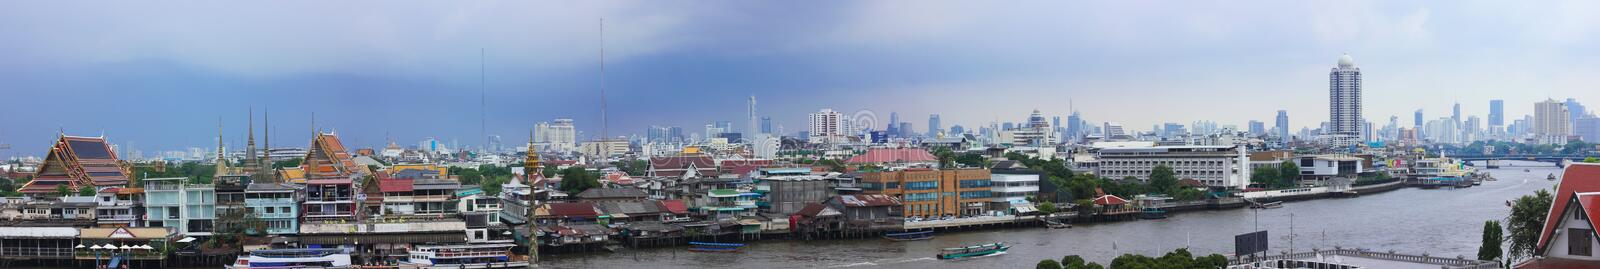 Panoramic image of Bangkok showing the Chao Phraya River stock photo